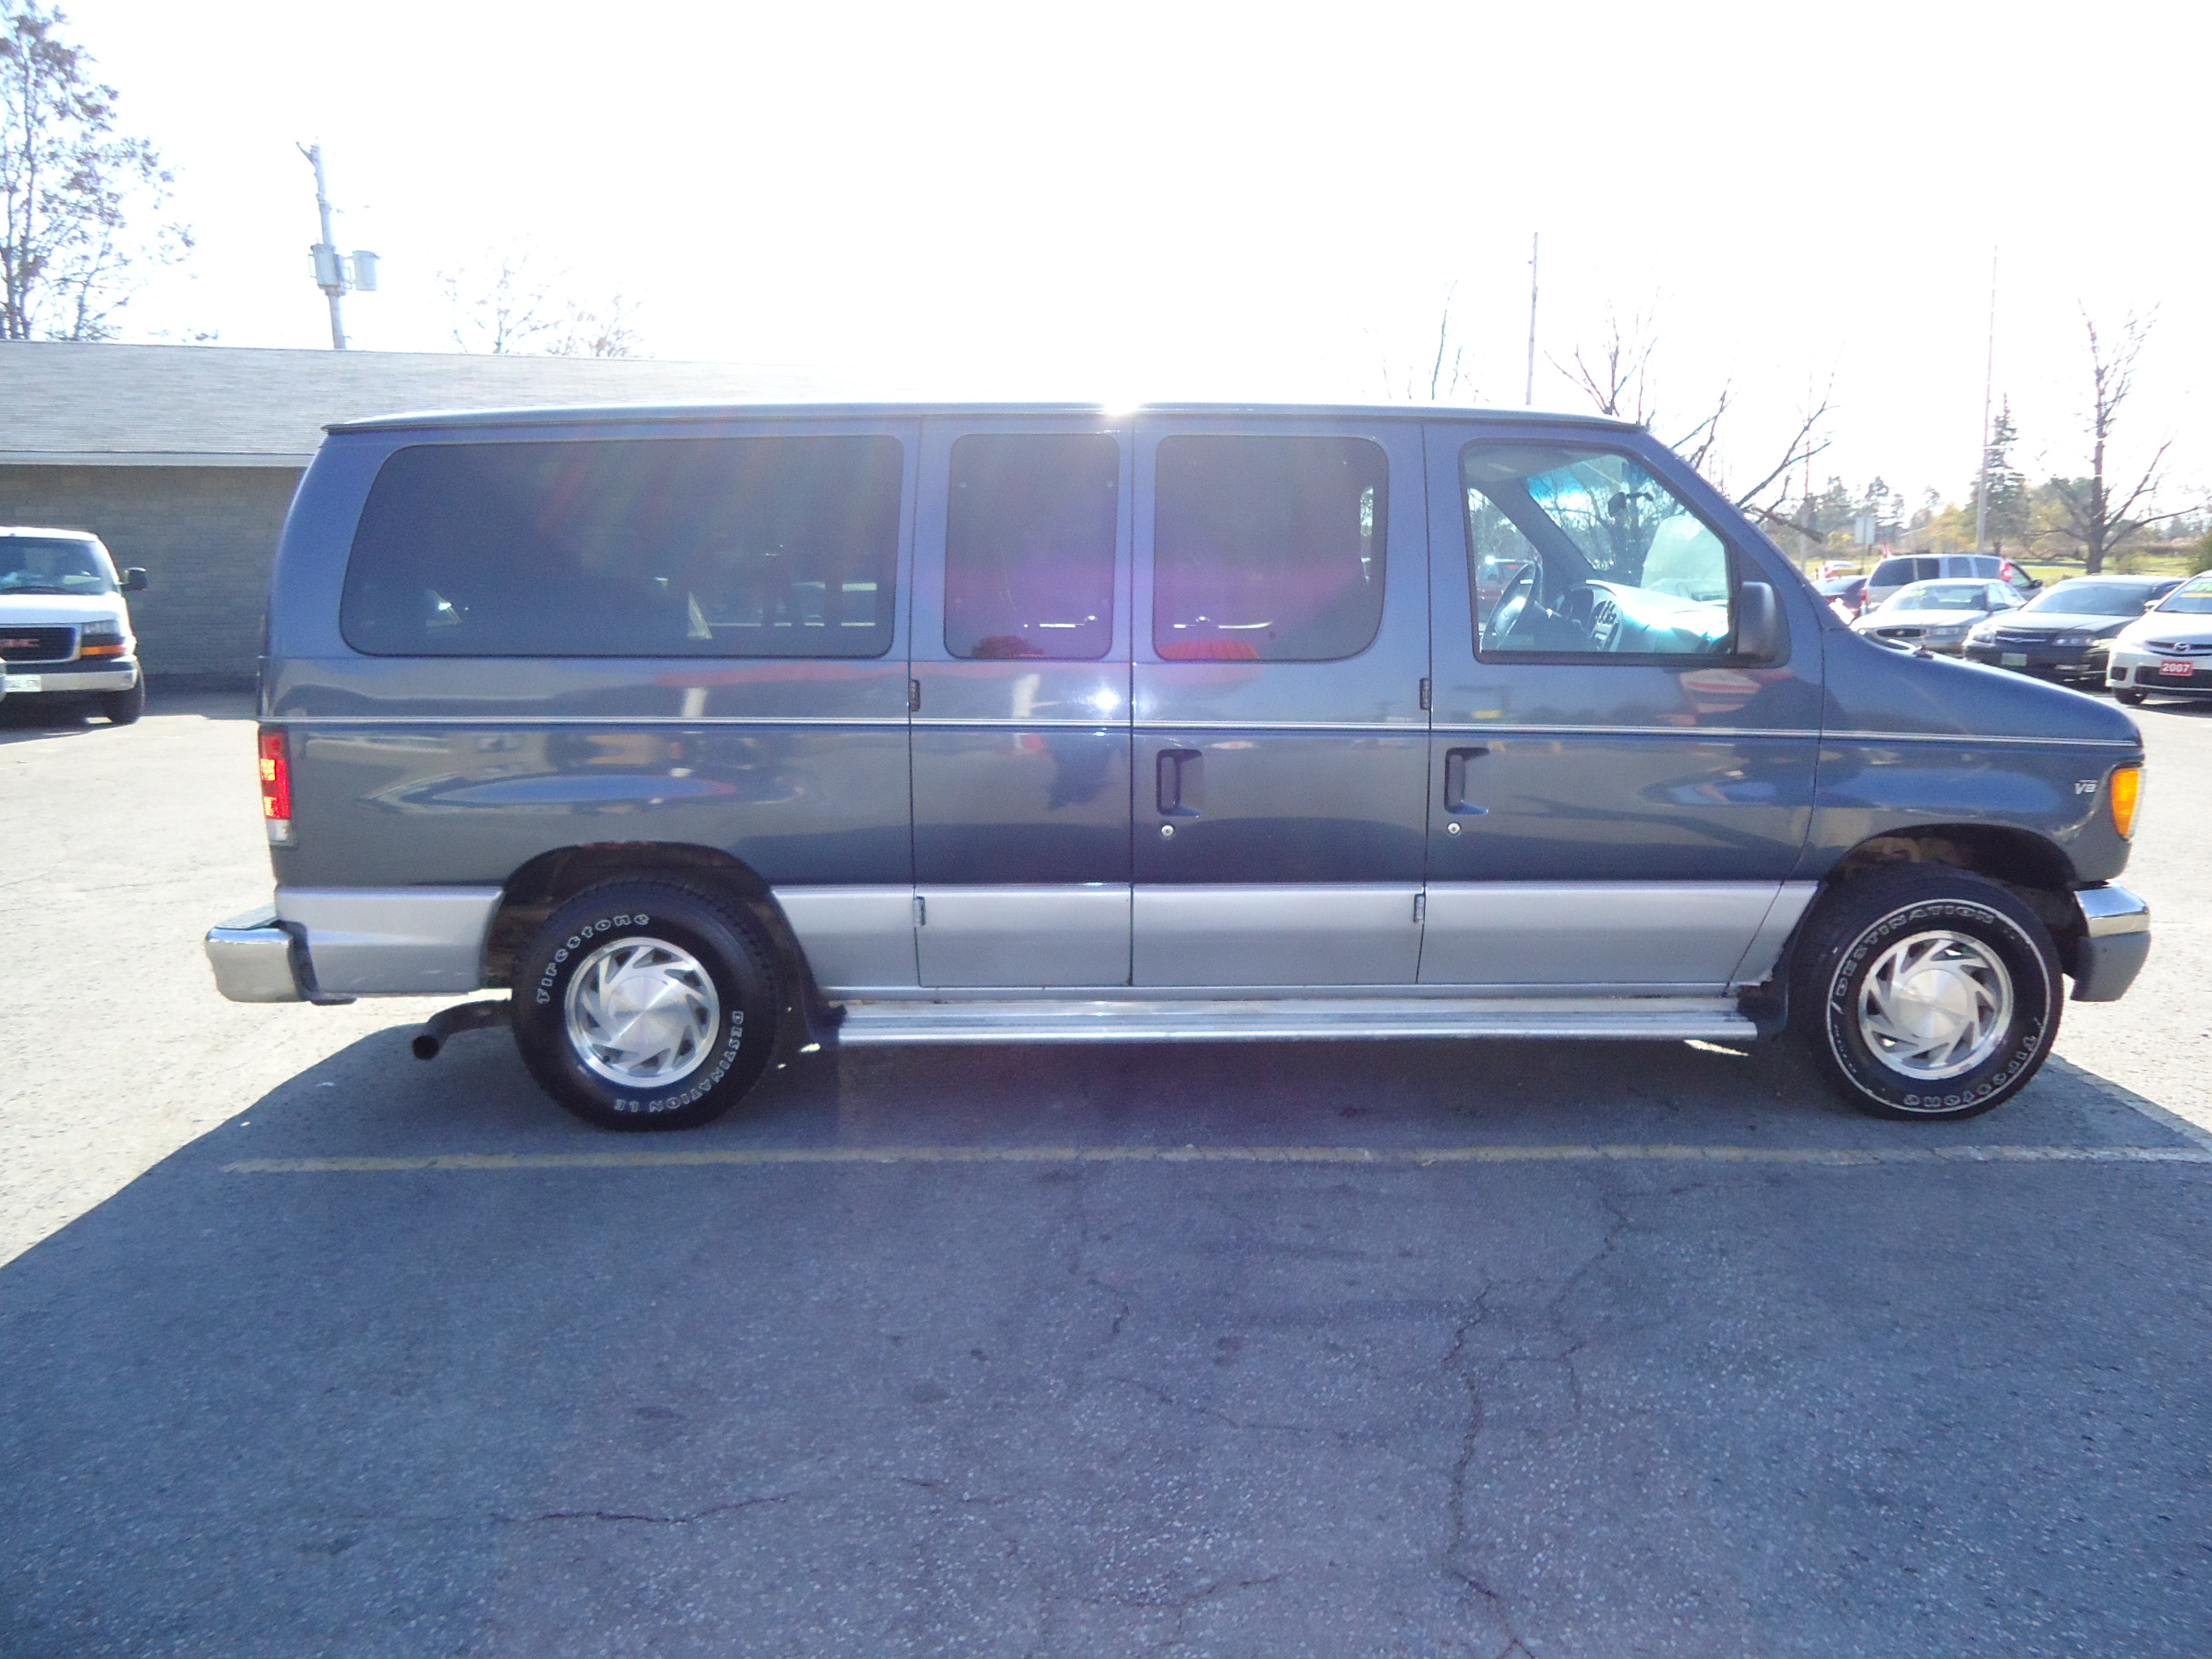 1998 Ford Club Wagon CHATEAU 7 PASSENGER (5) | Bob Currie